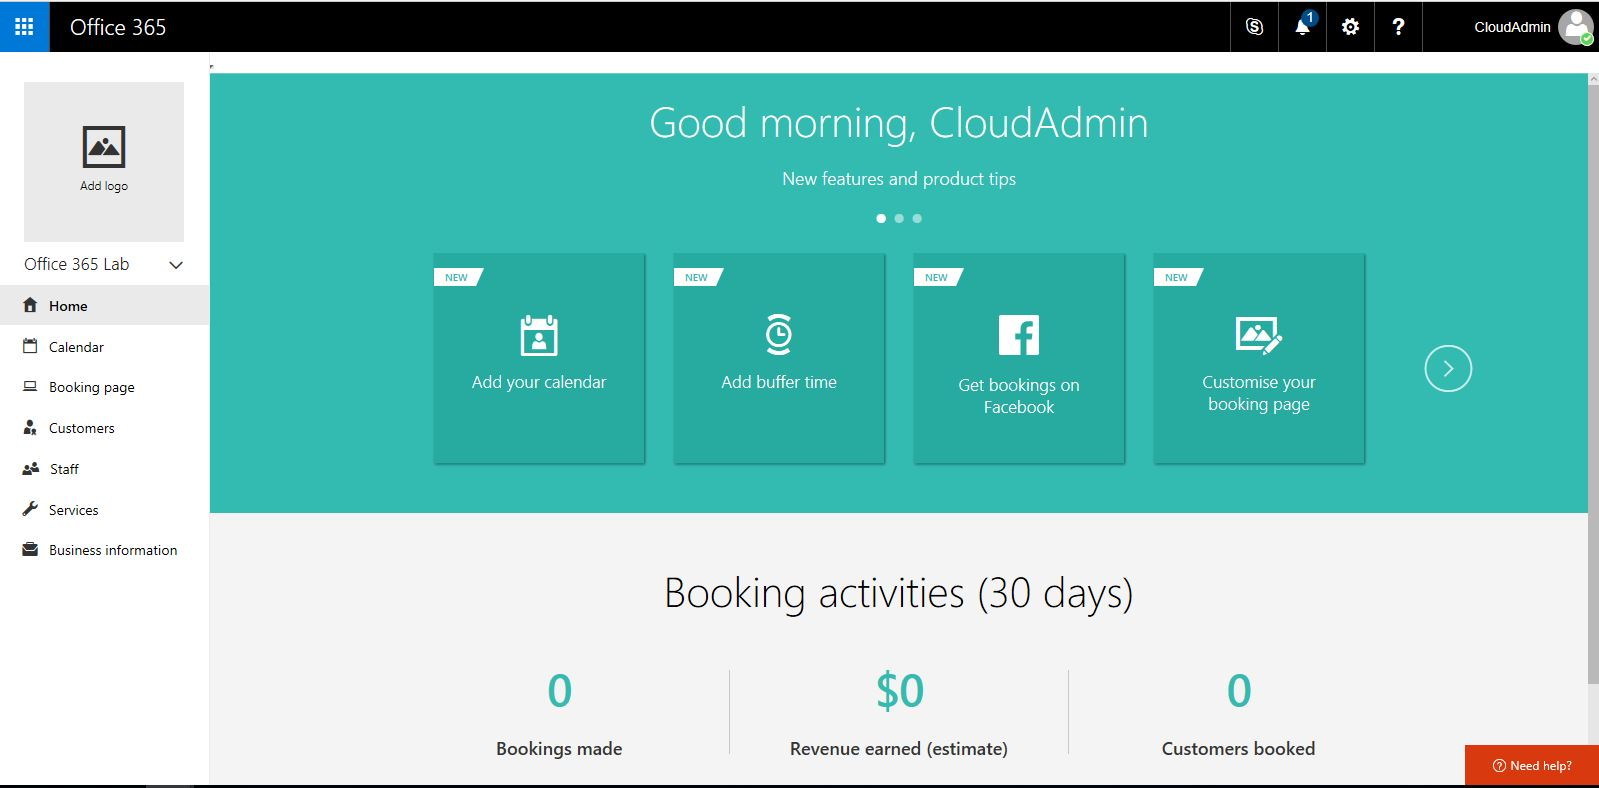 Setup a Customer Bookings Page Using Office 365 Bookings